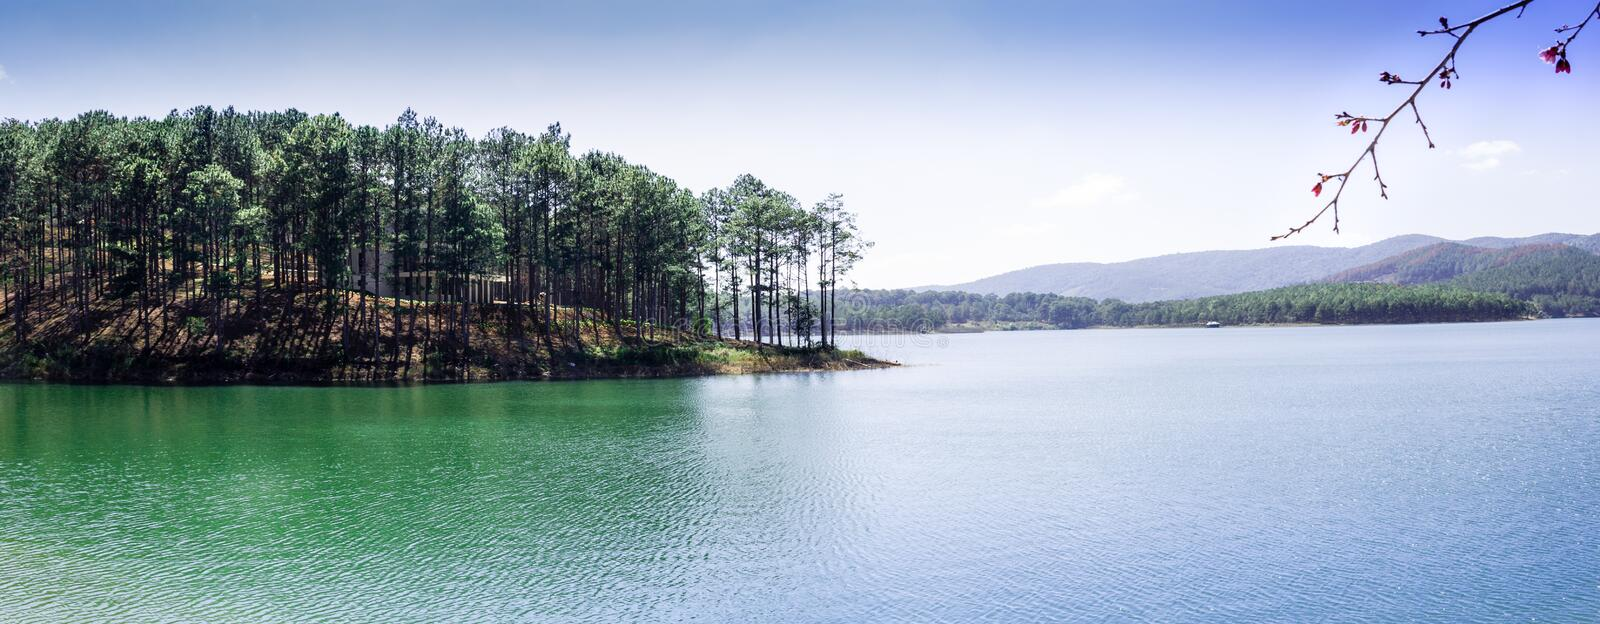 Tuyen Lam Lake - Da Lat. Tuyen Lam Lake is a lake in the city of Da Lat, Lam province. It is the largest freshwater lake in Da Lat, with an area of about 320 stock photography